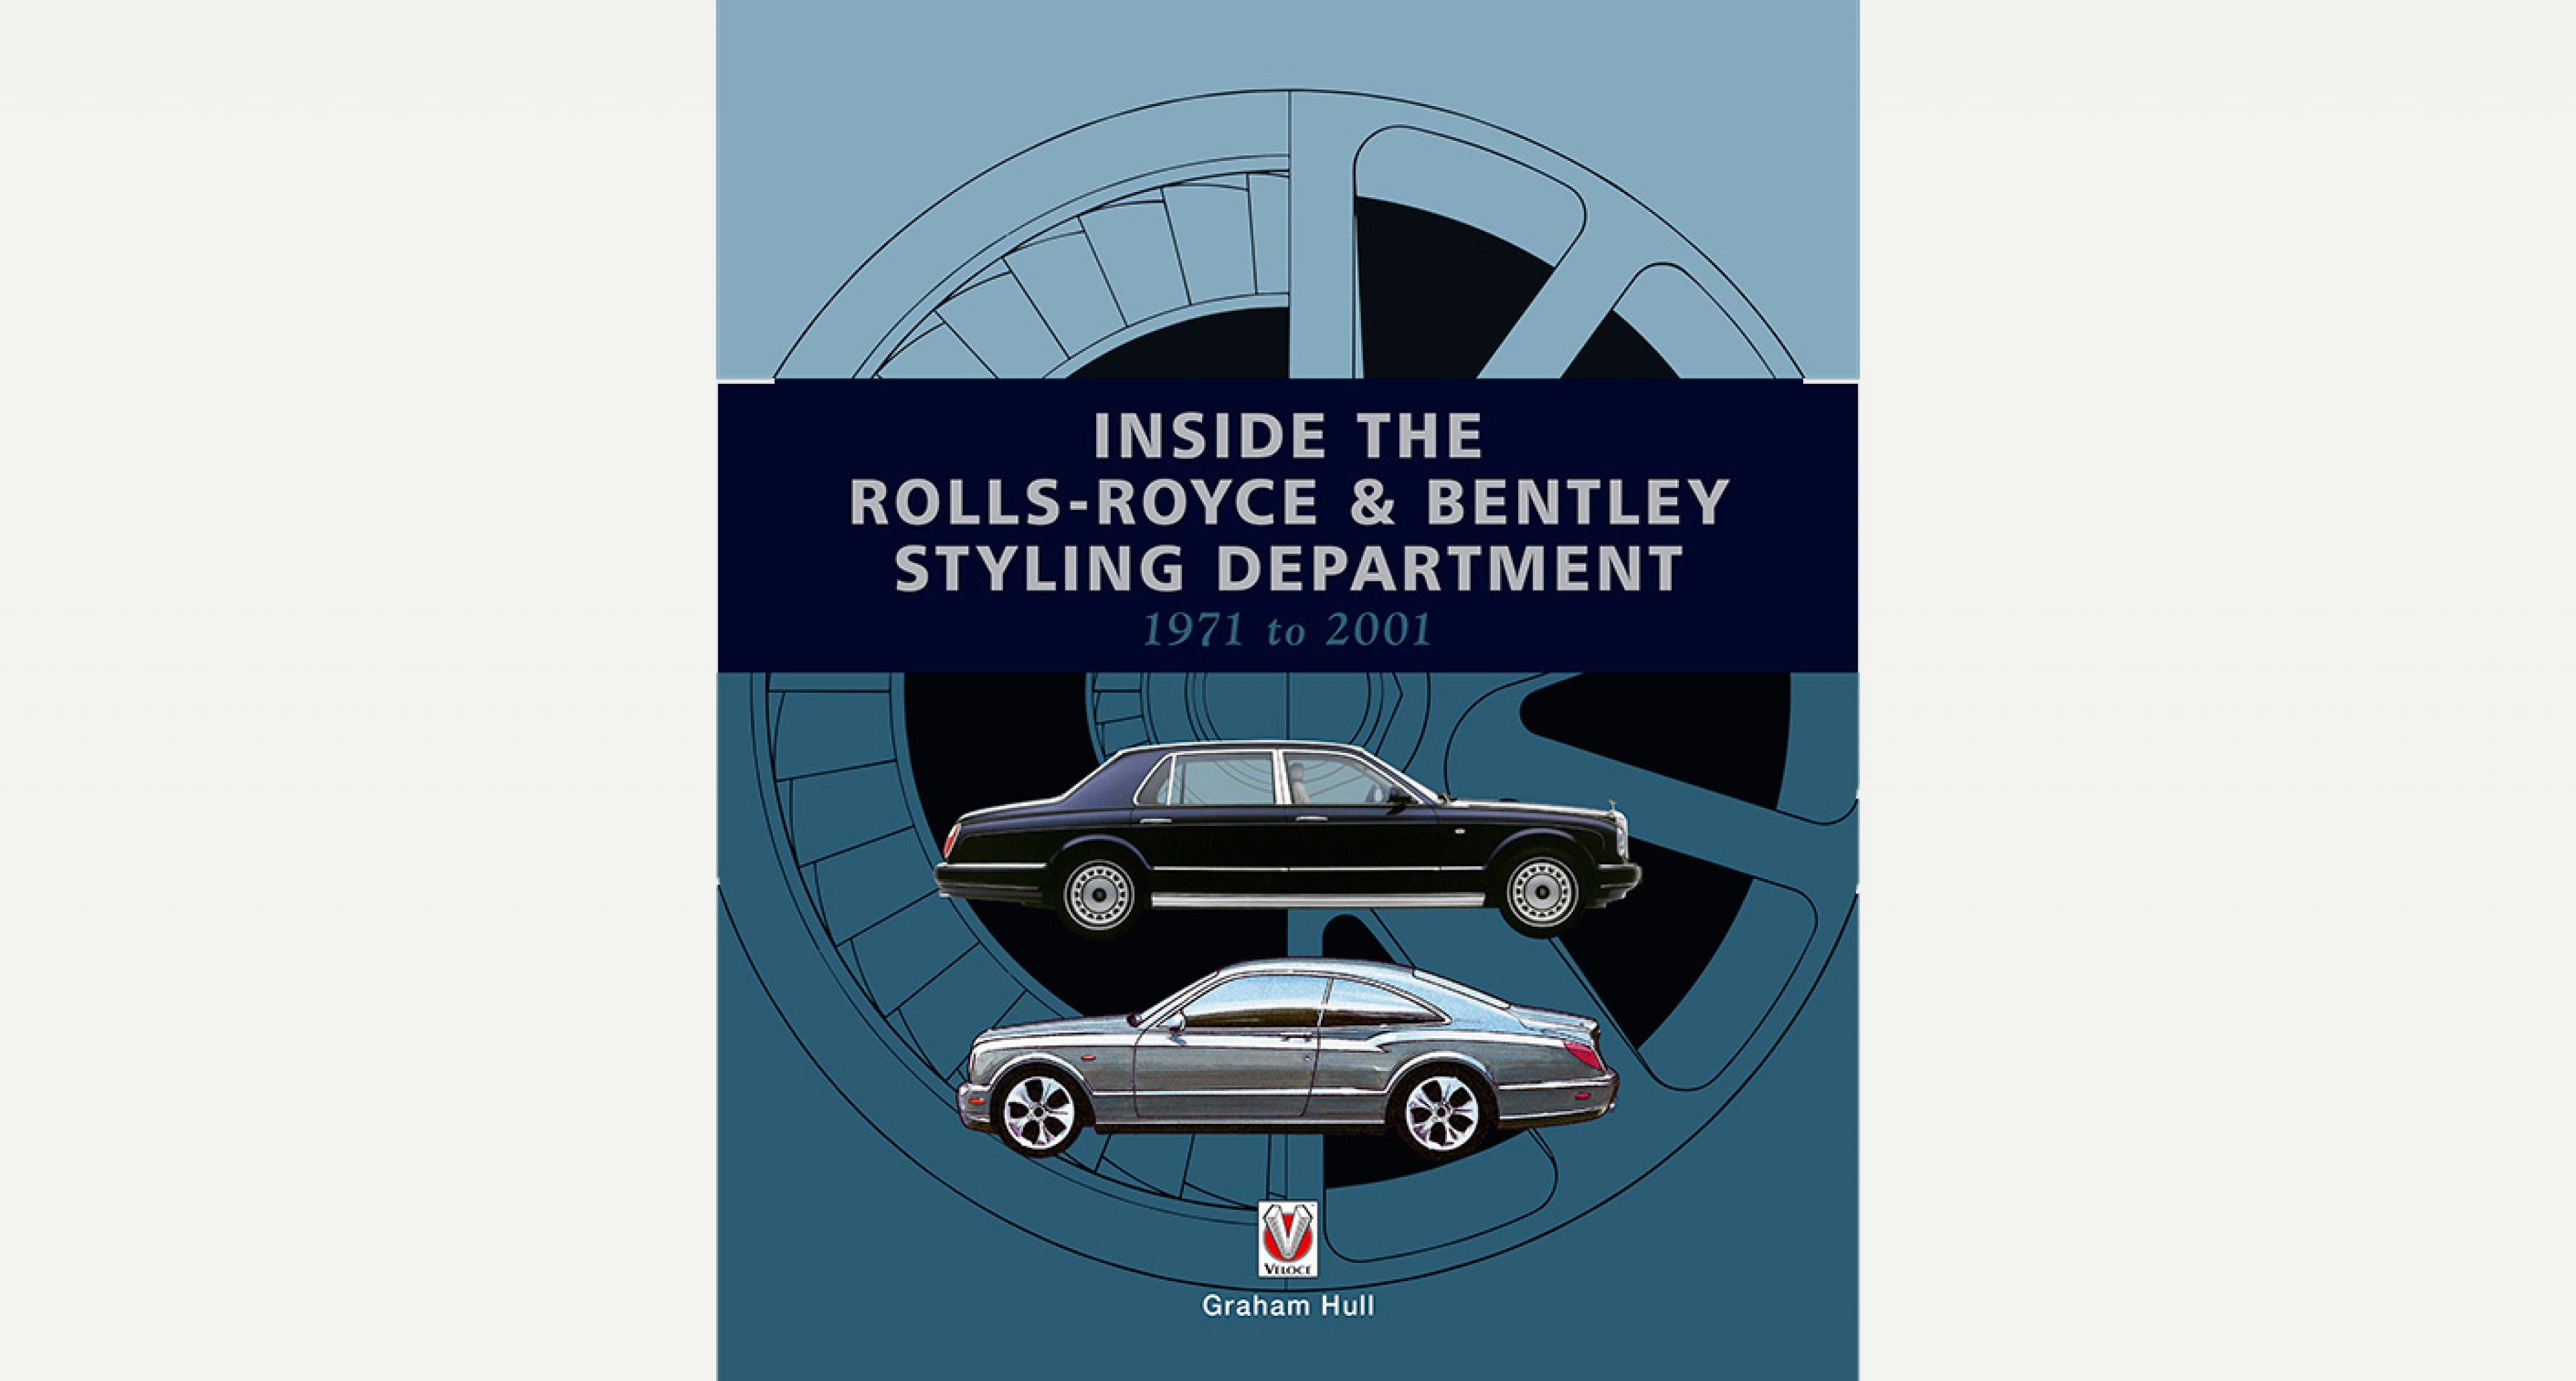 Authored by Graham Hull and published by Veloce books